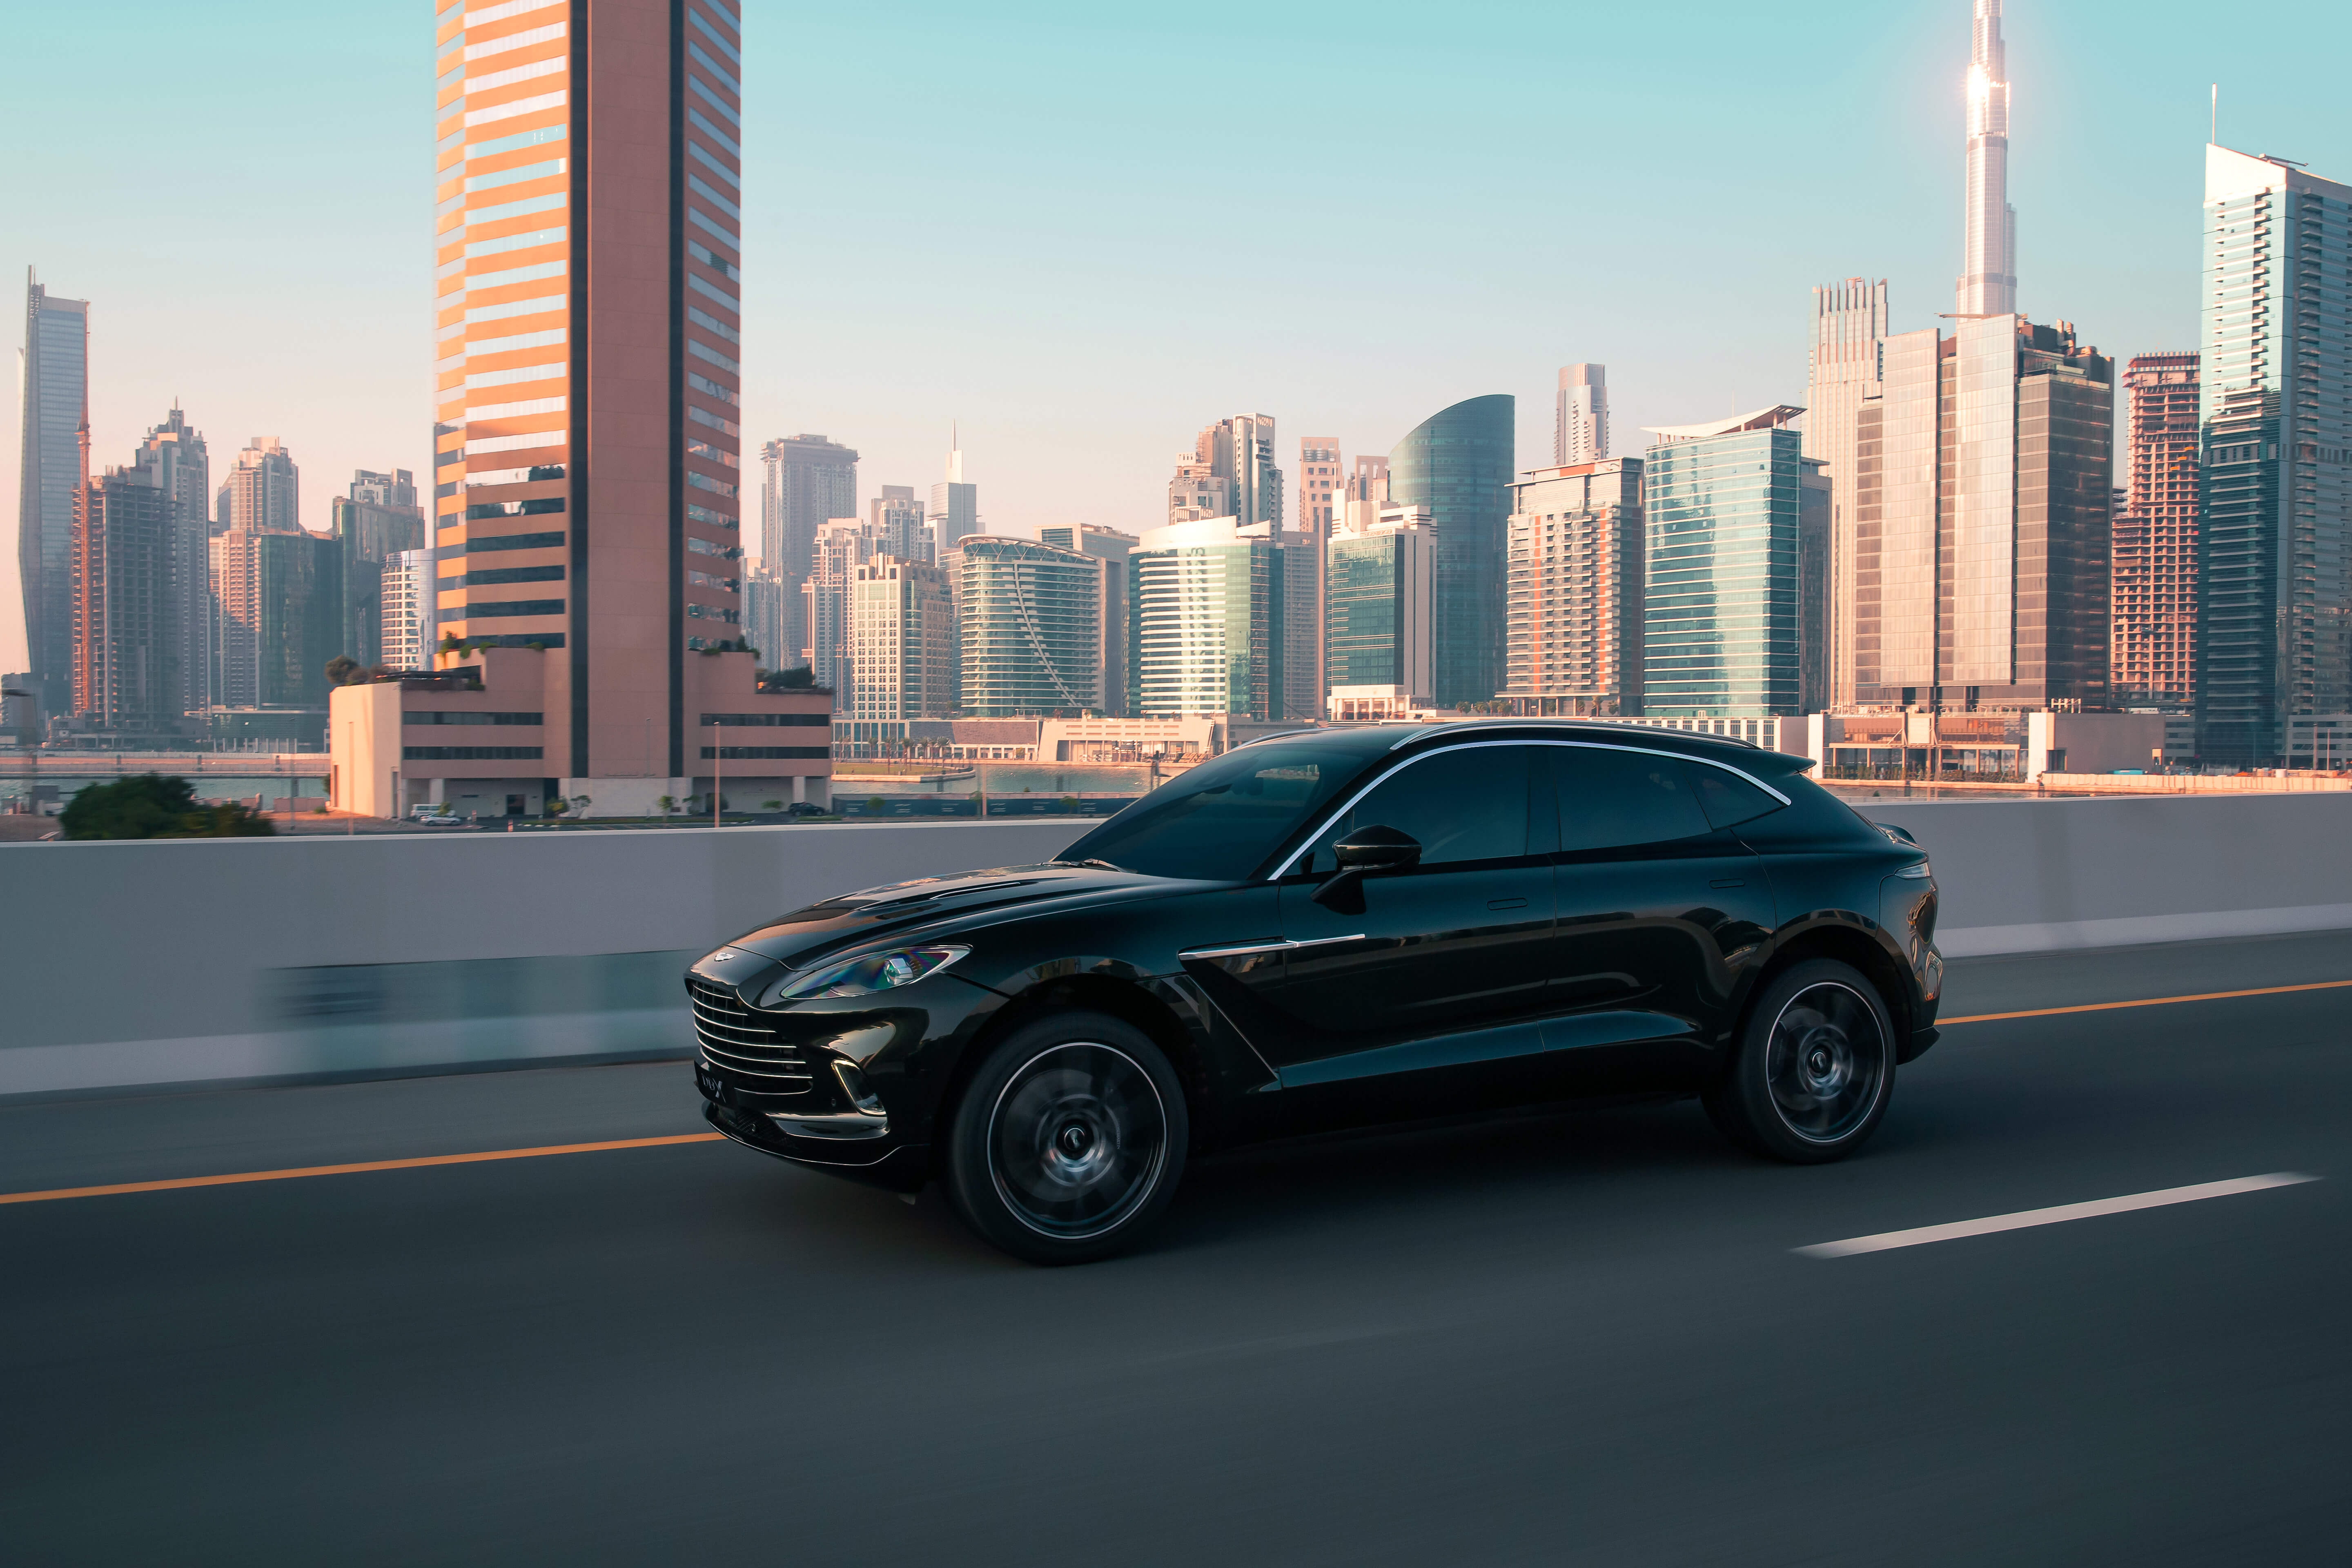 The all-new Aston Martin DBX